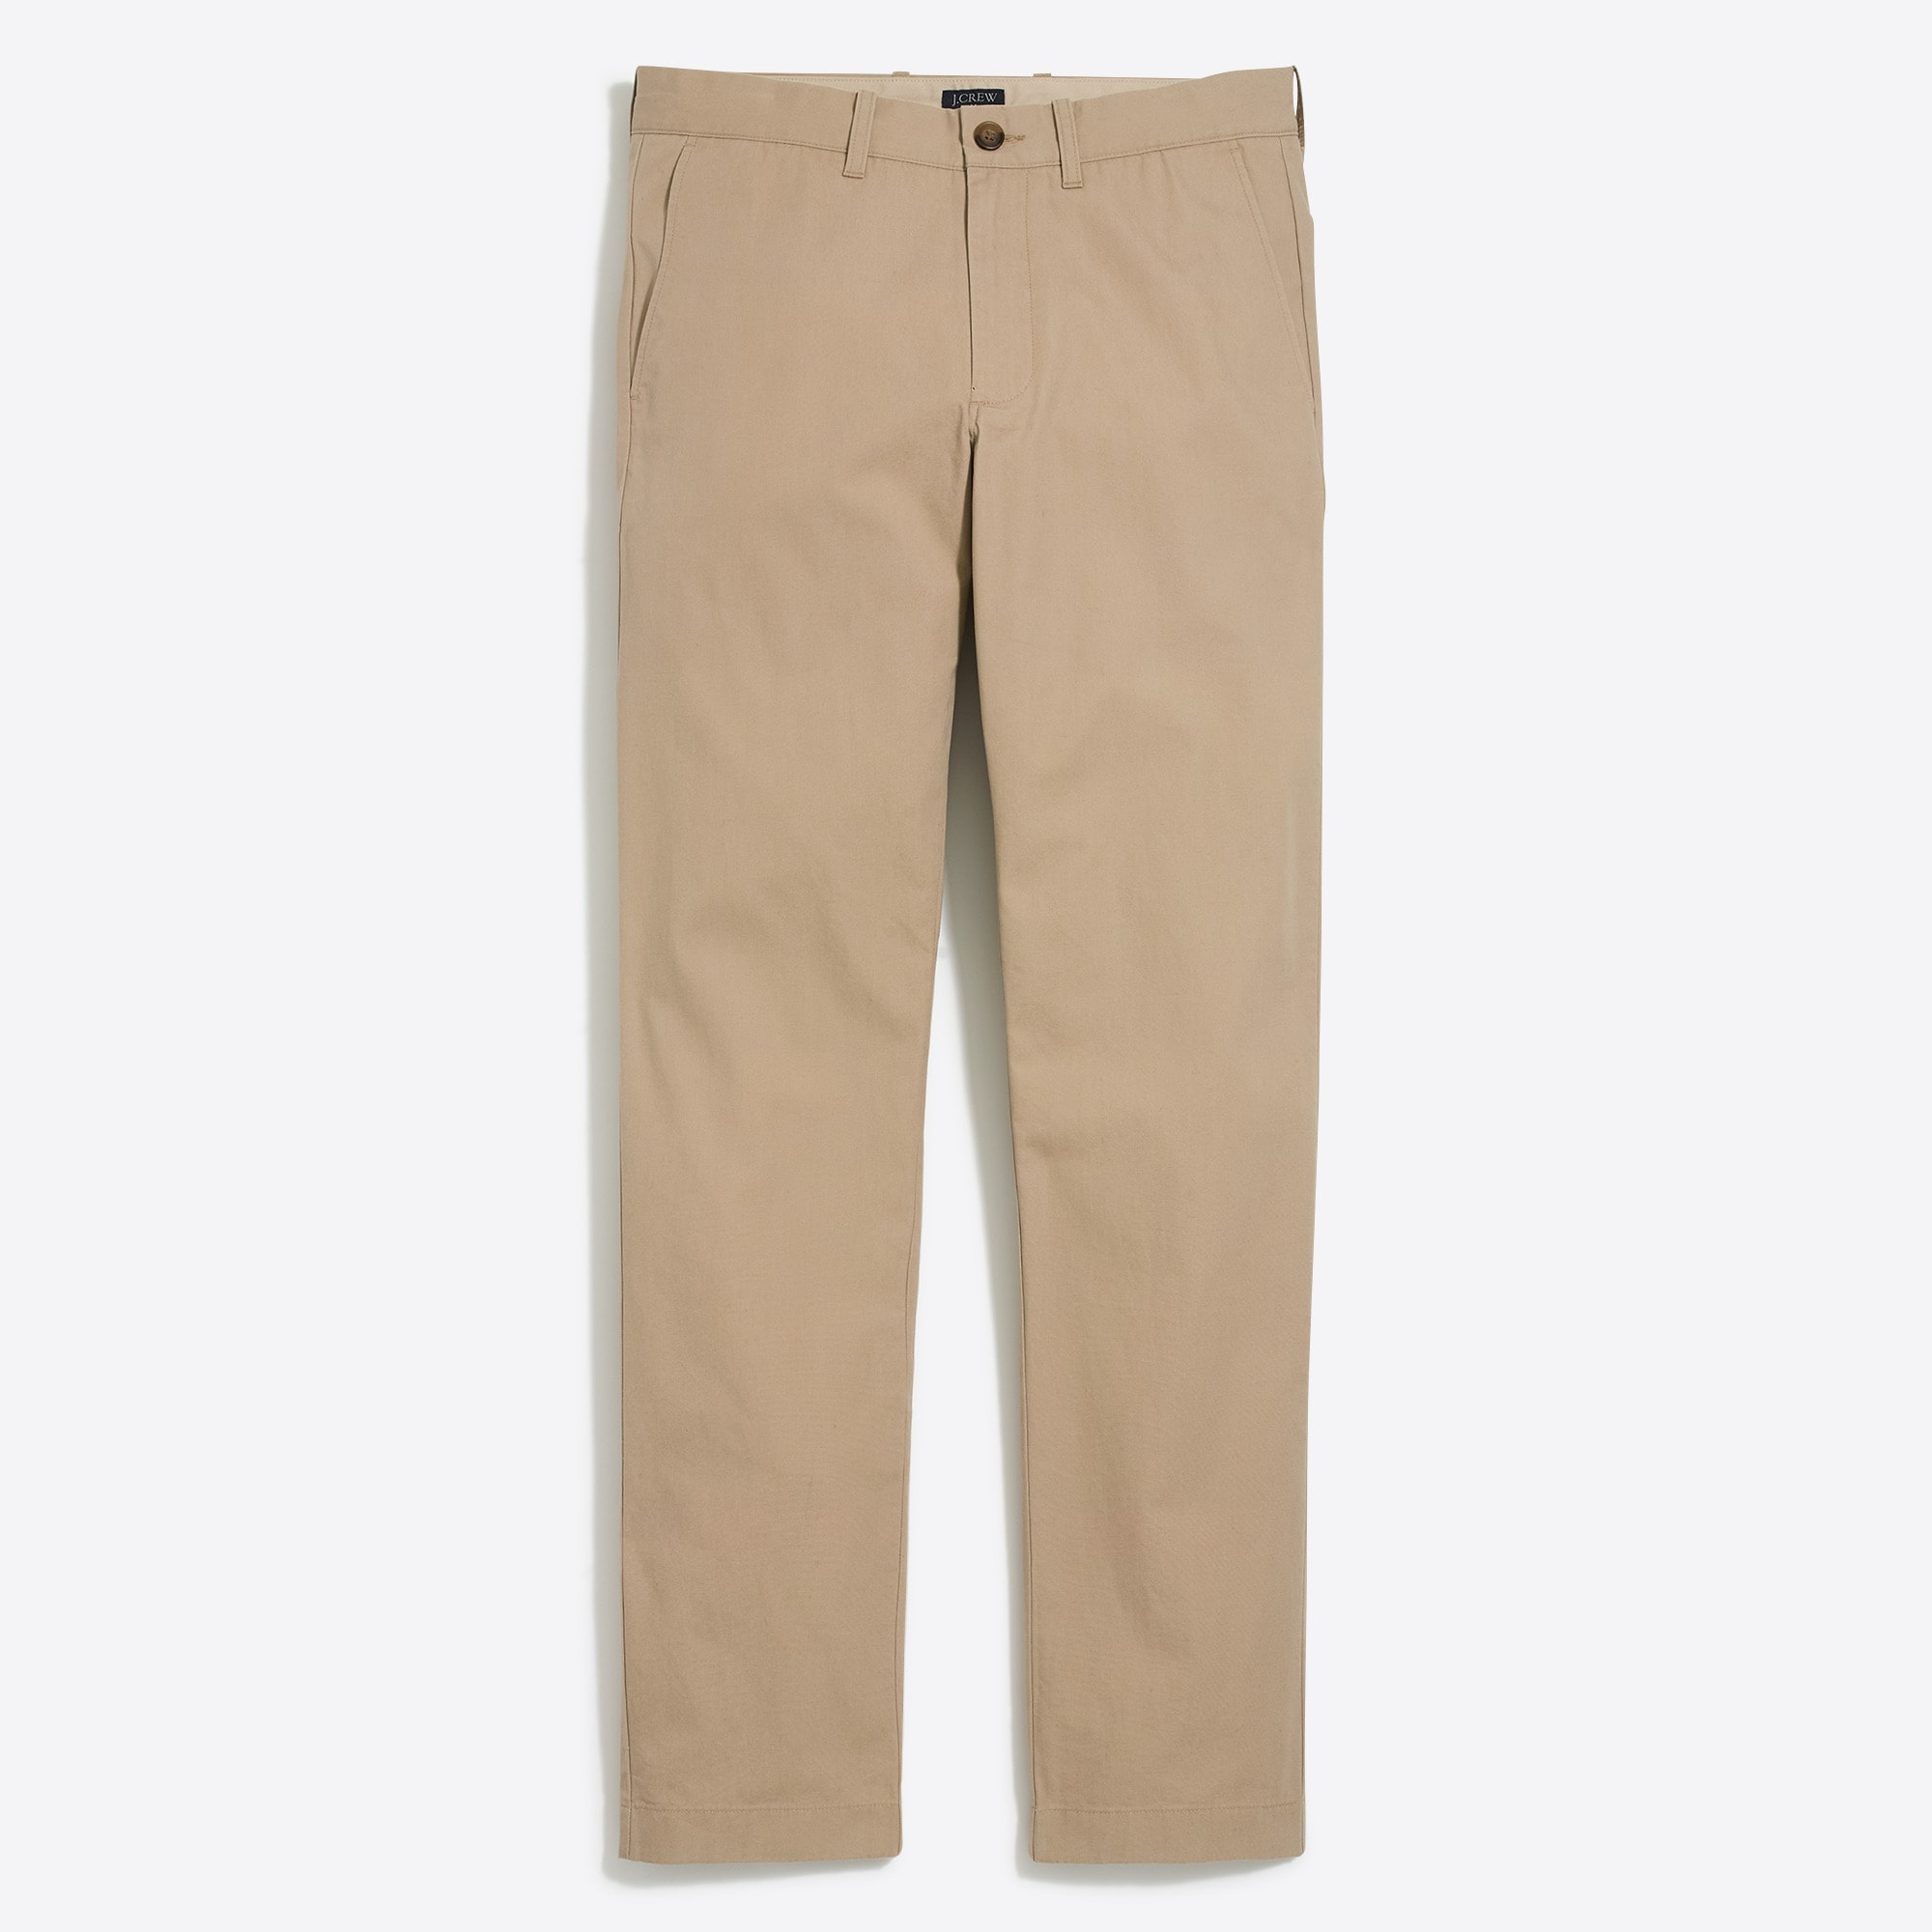 J.Crew Mercantile Sutton straight-fit lightweight chino men pants c